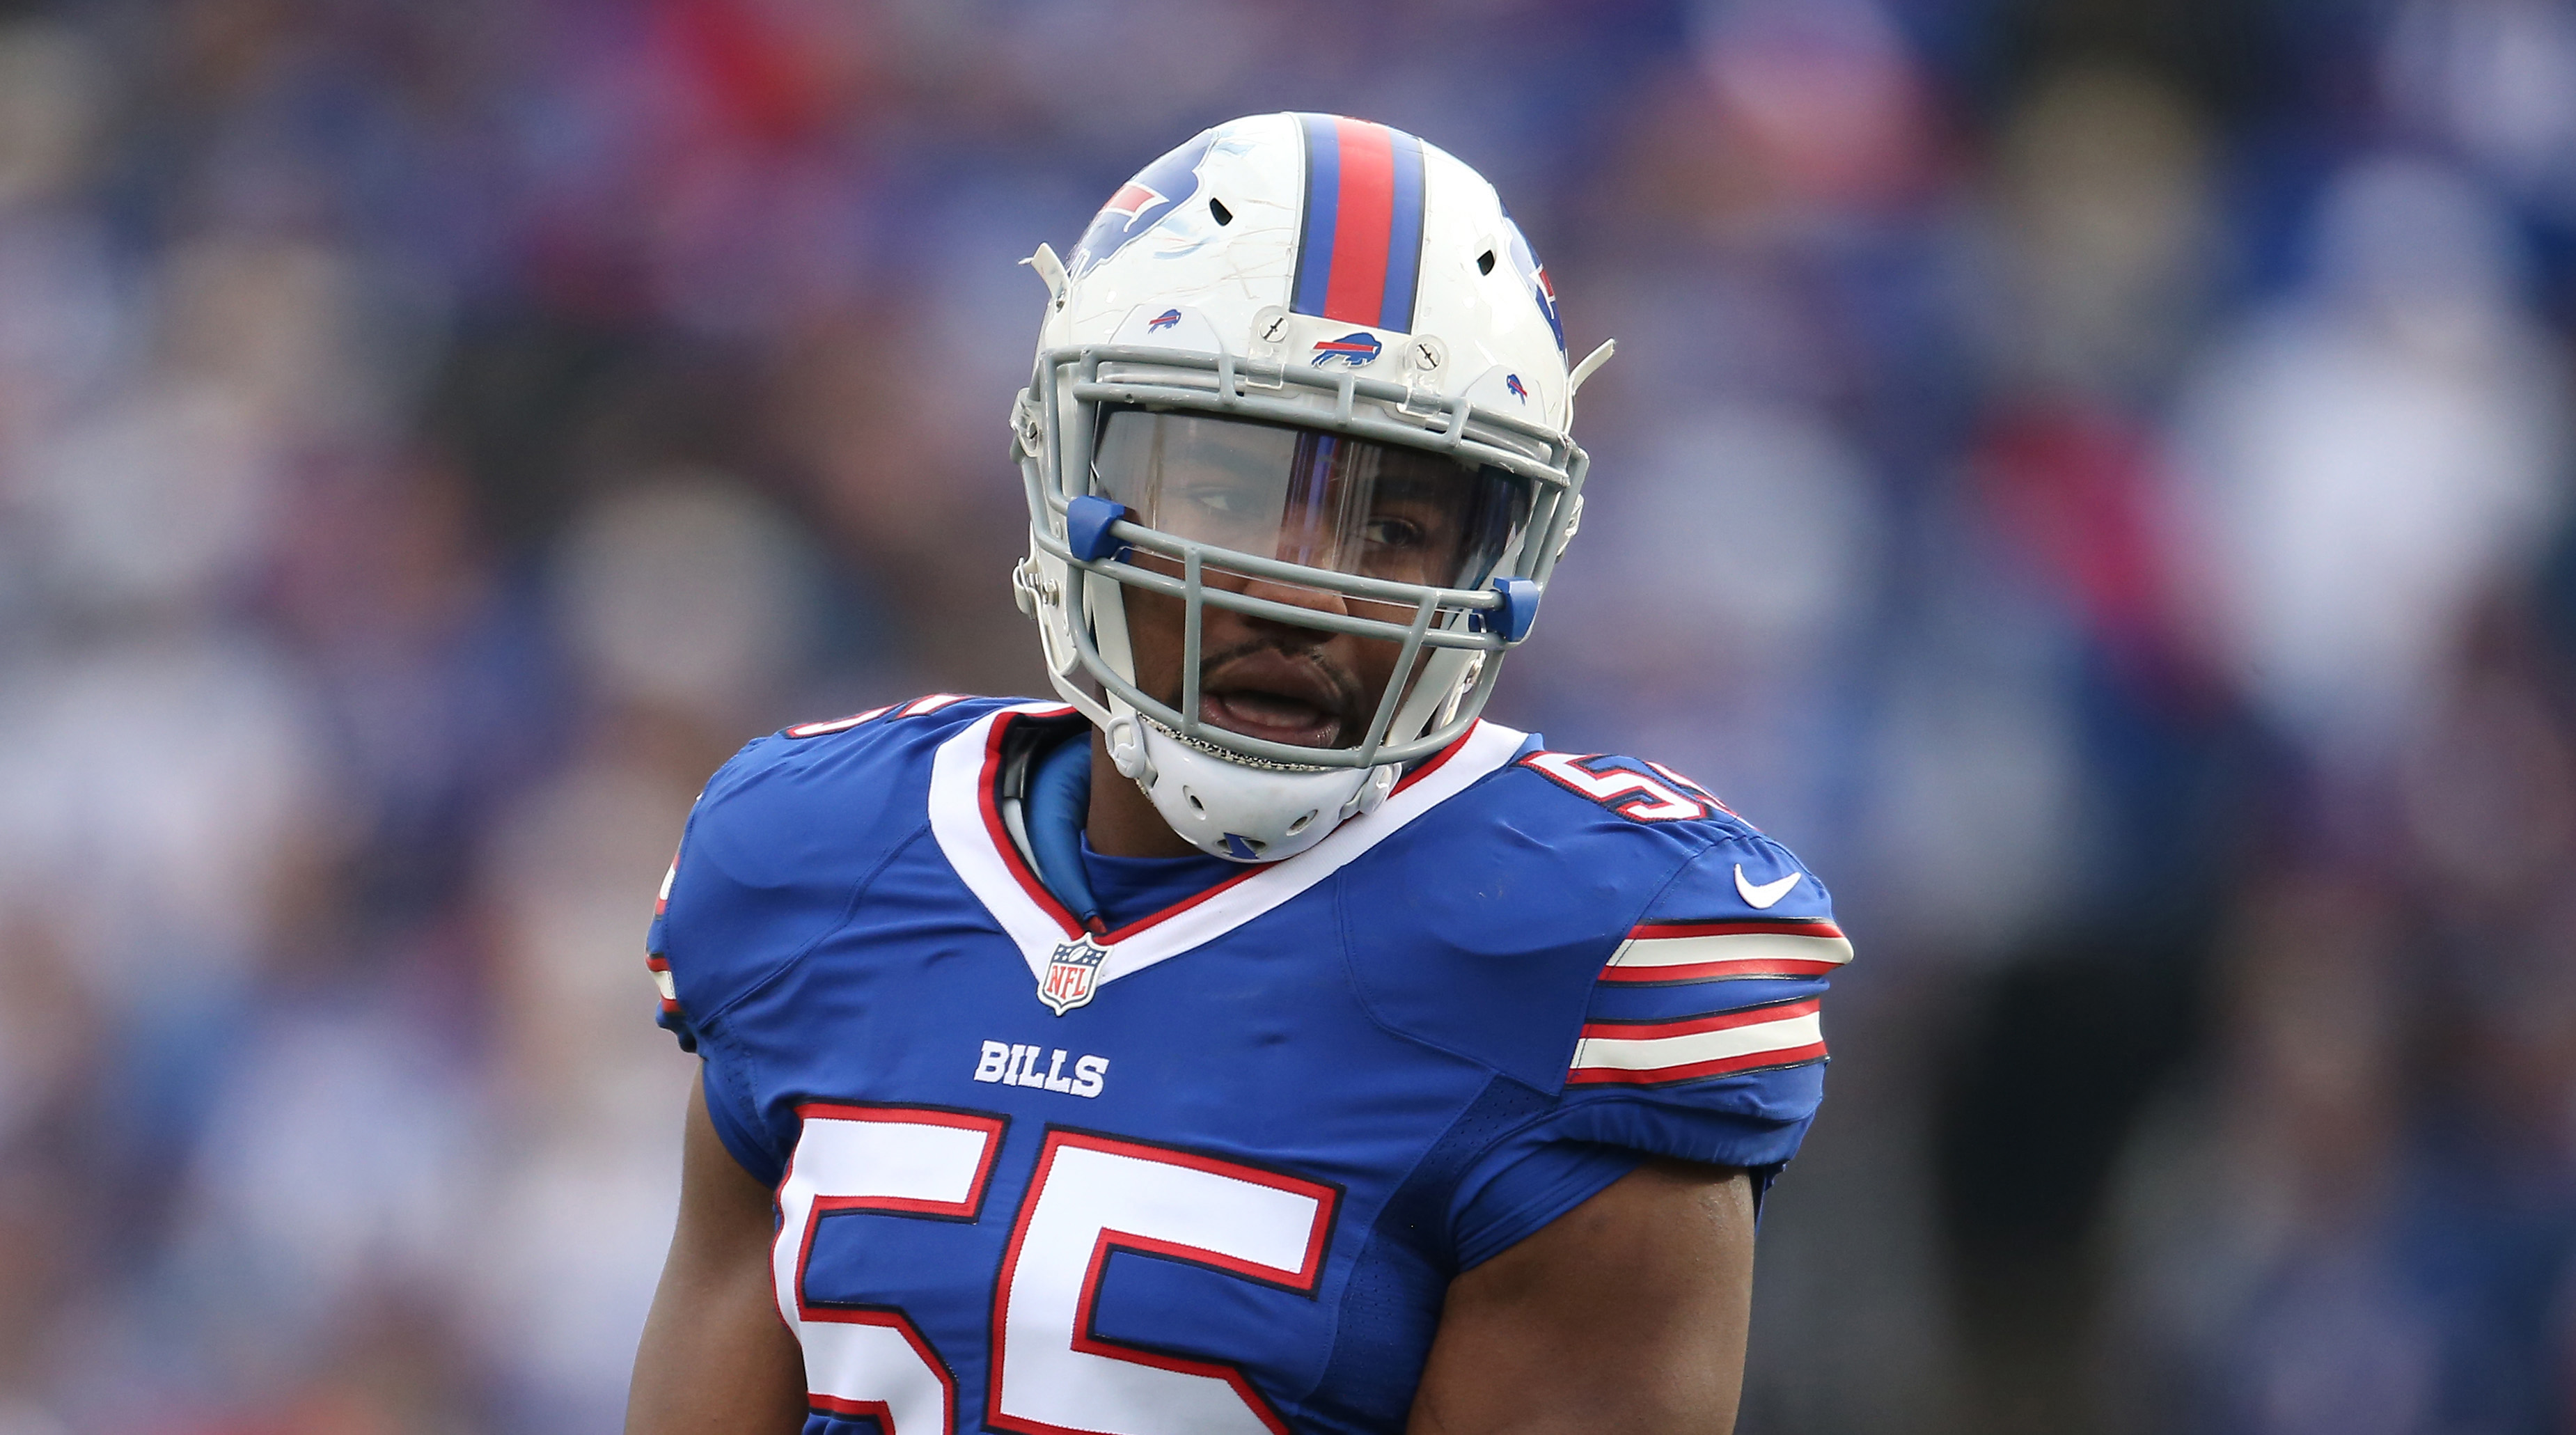 Jerry-hughes-fined